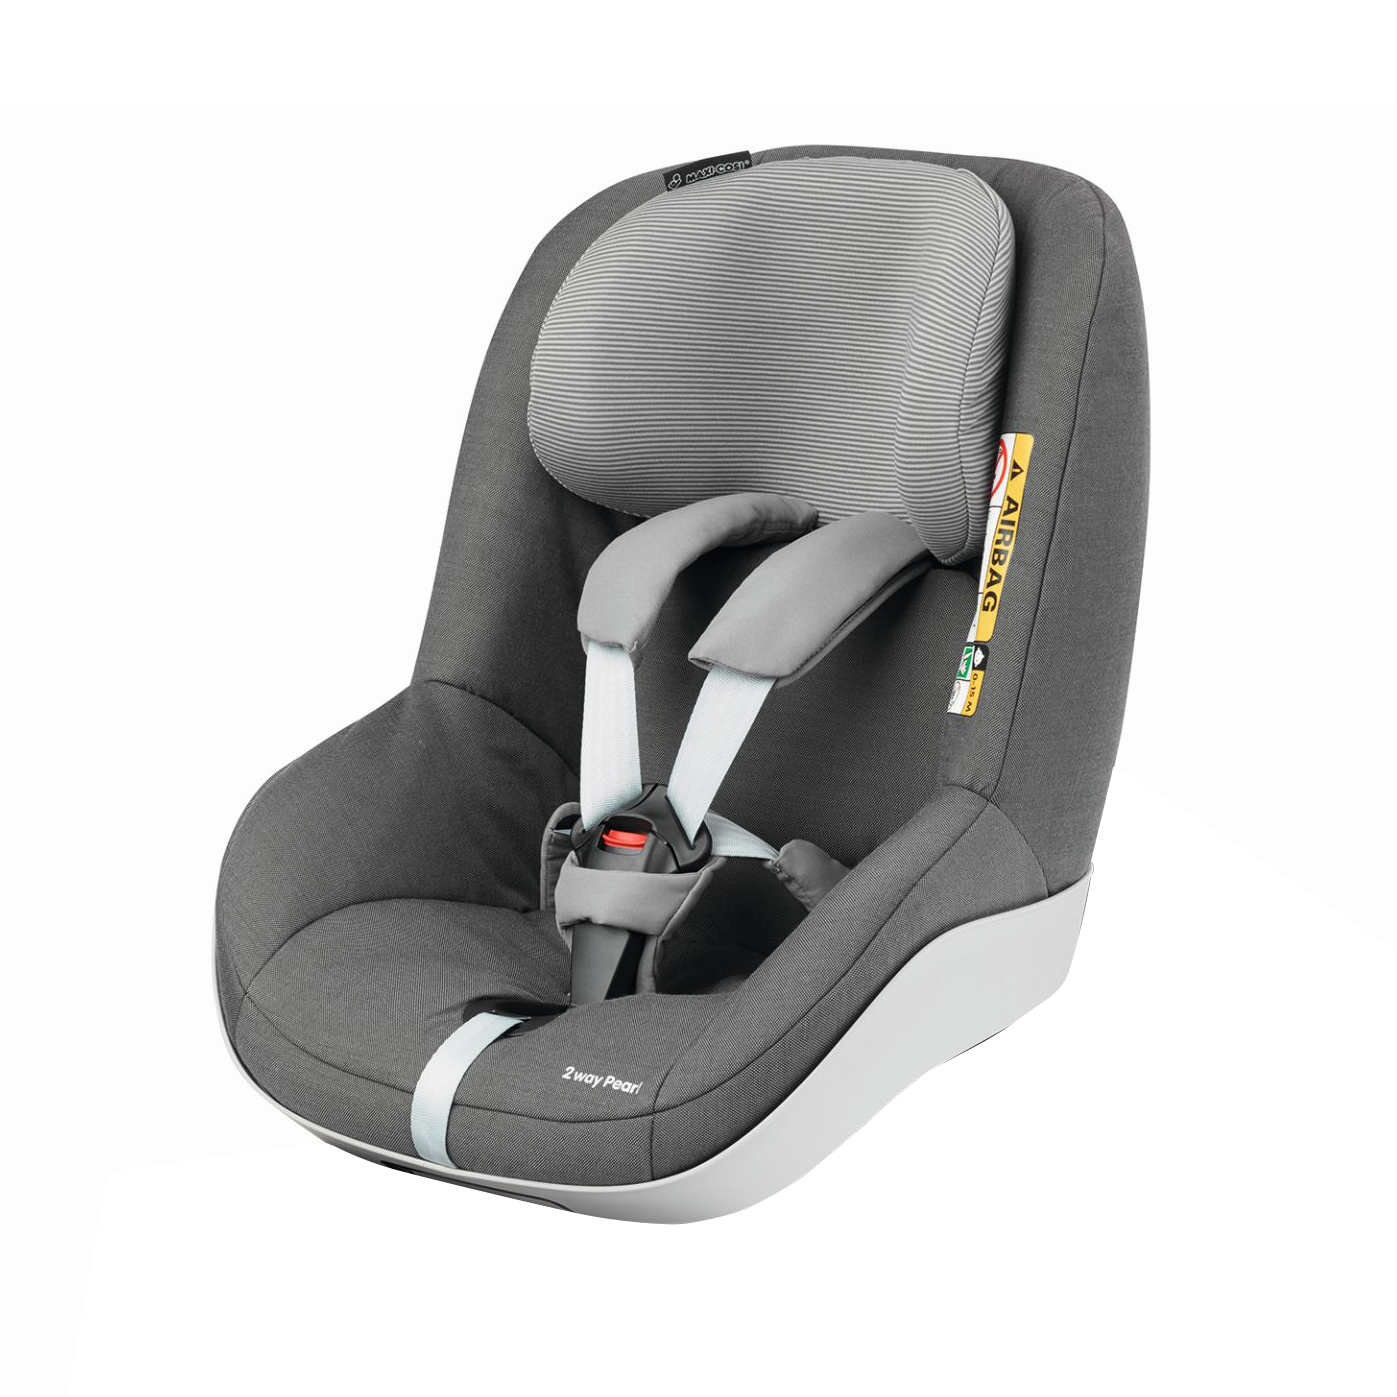 Si ge d enfant maxi cosi 2way pearl 2017 concrete grey for Siege enfant